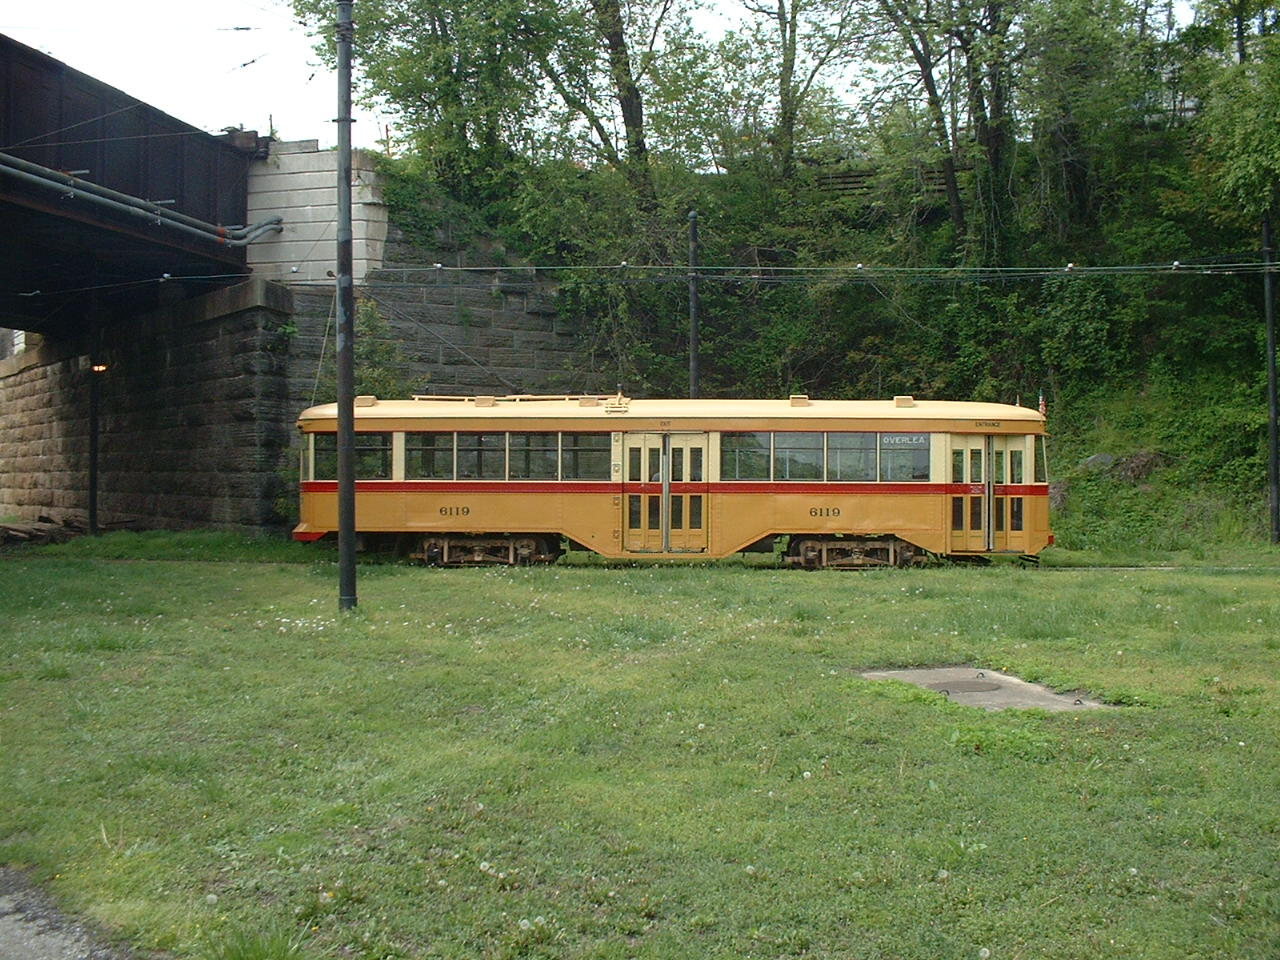 (300k, 1280x960)<br><b>Country:</b> United States<br><b>City:</b> Baltimore, MD<br><b>System:</b> Baltimore Streetcar Museum <br><b>Car:</b>  6119 <br><b>Photo by:</b> Dan Lawrence<br><b>Date:</b> 4/27/2002<br><b>Notes:</b> BSM 6119 at North Avenue Loop<br><b>Viewed (this week/total):</b> 0 / 3281